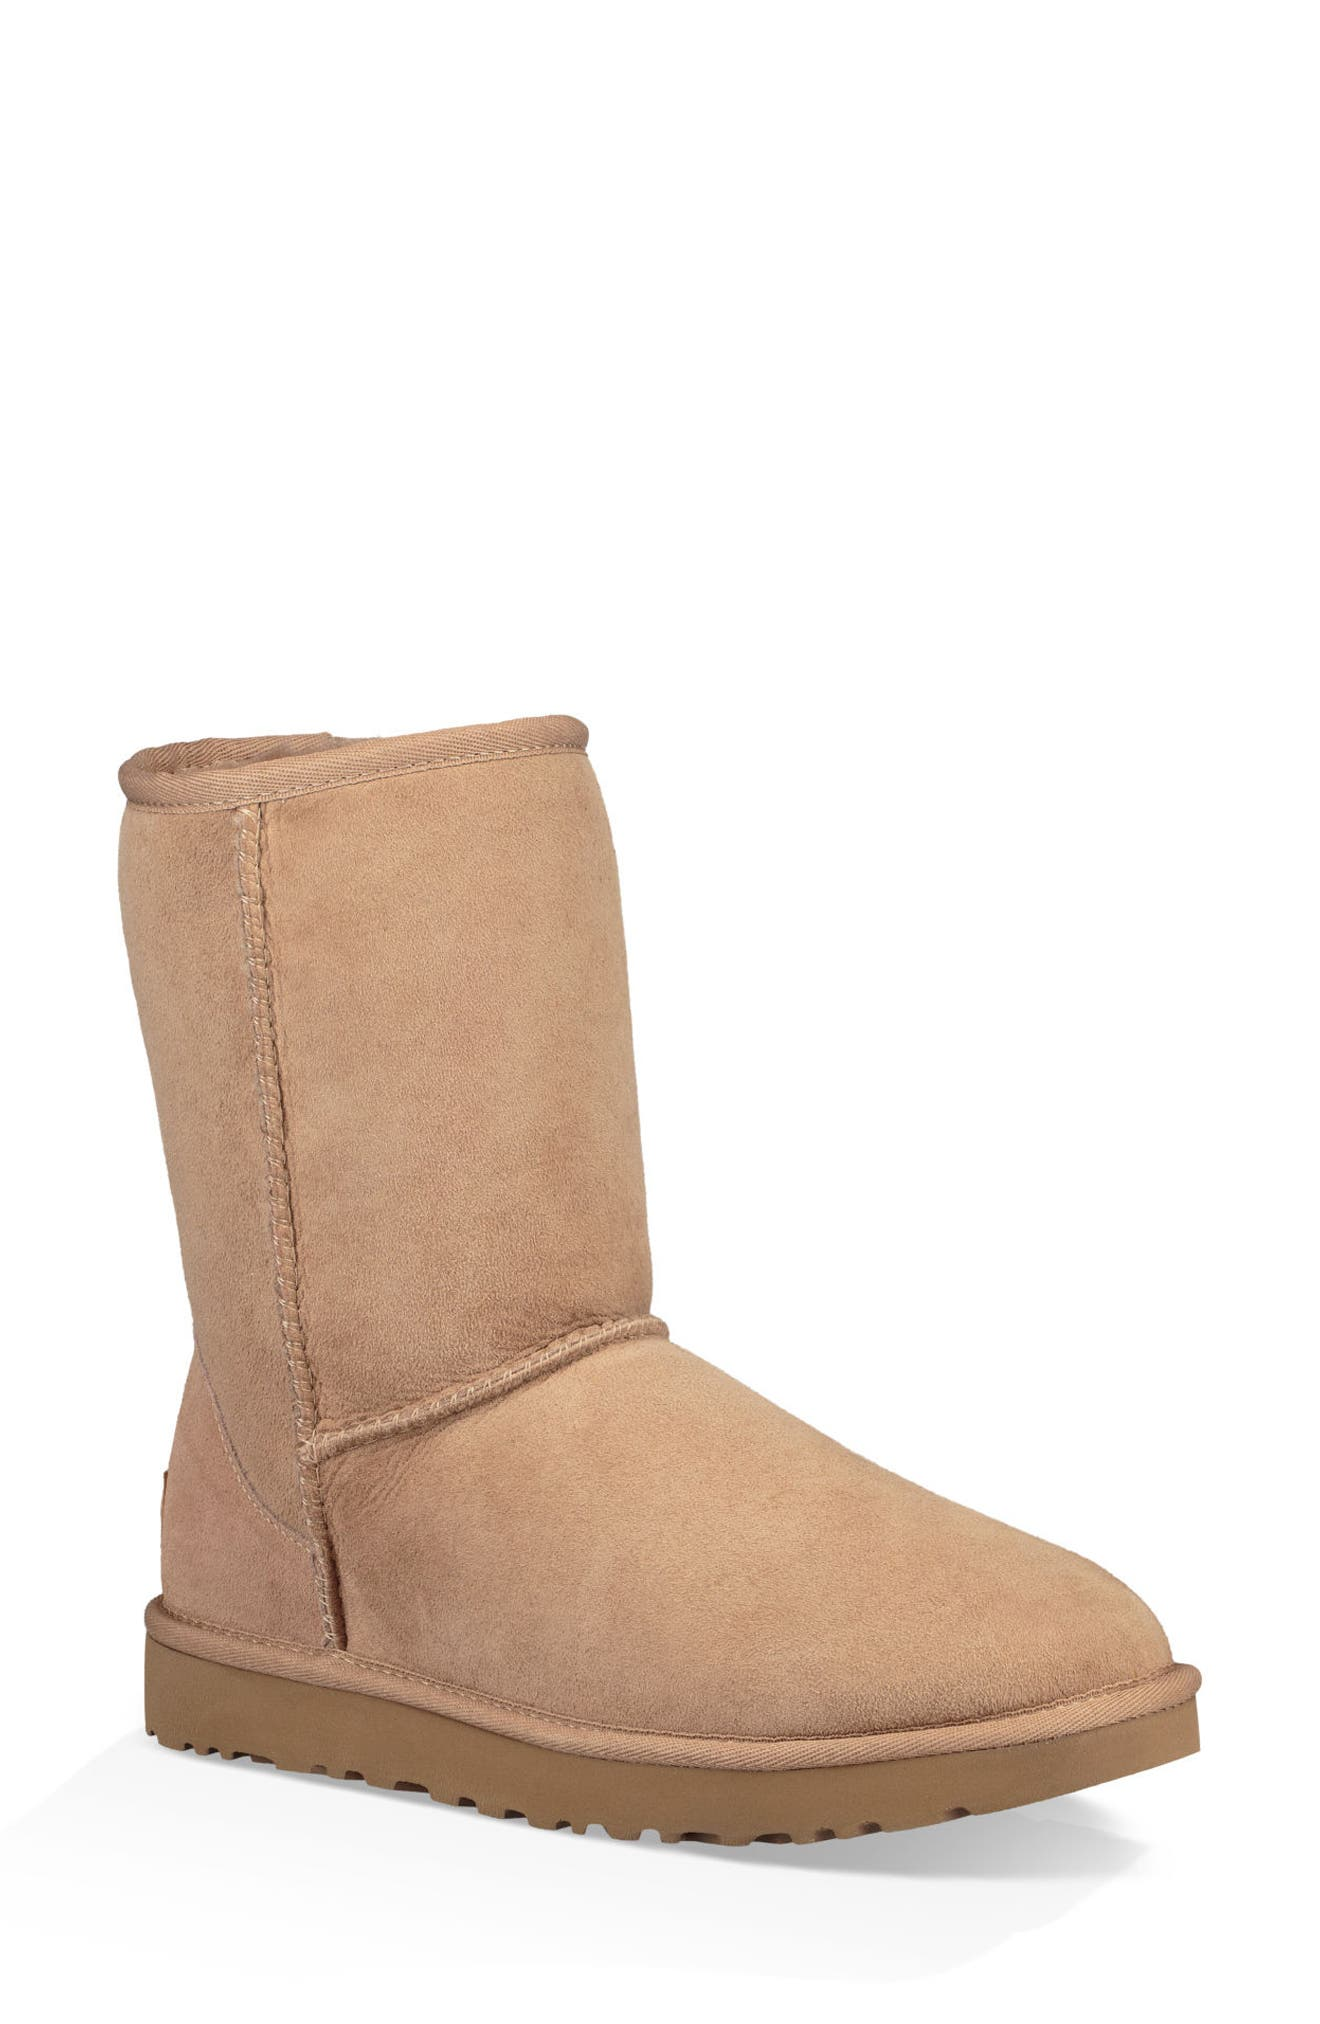 'Classic II' Genuine Shearling Lined Short Boot,                         Main,                         color, Fawn Suede